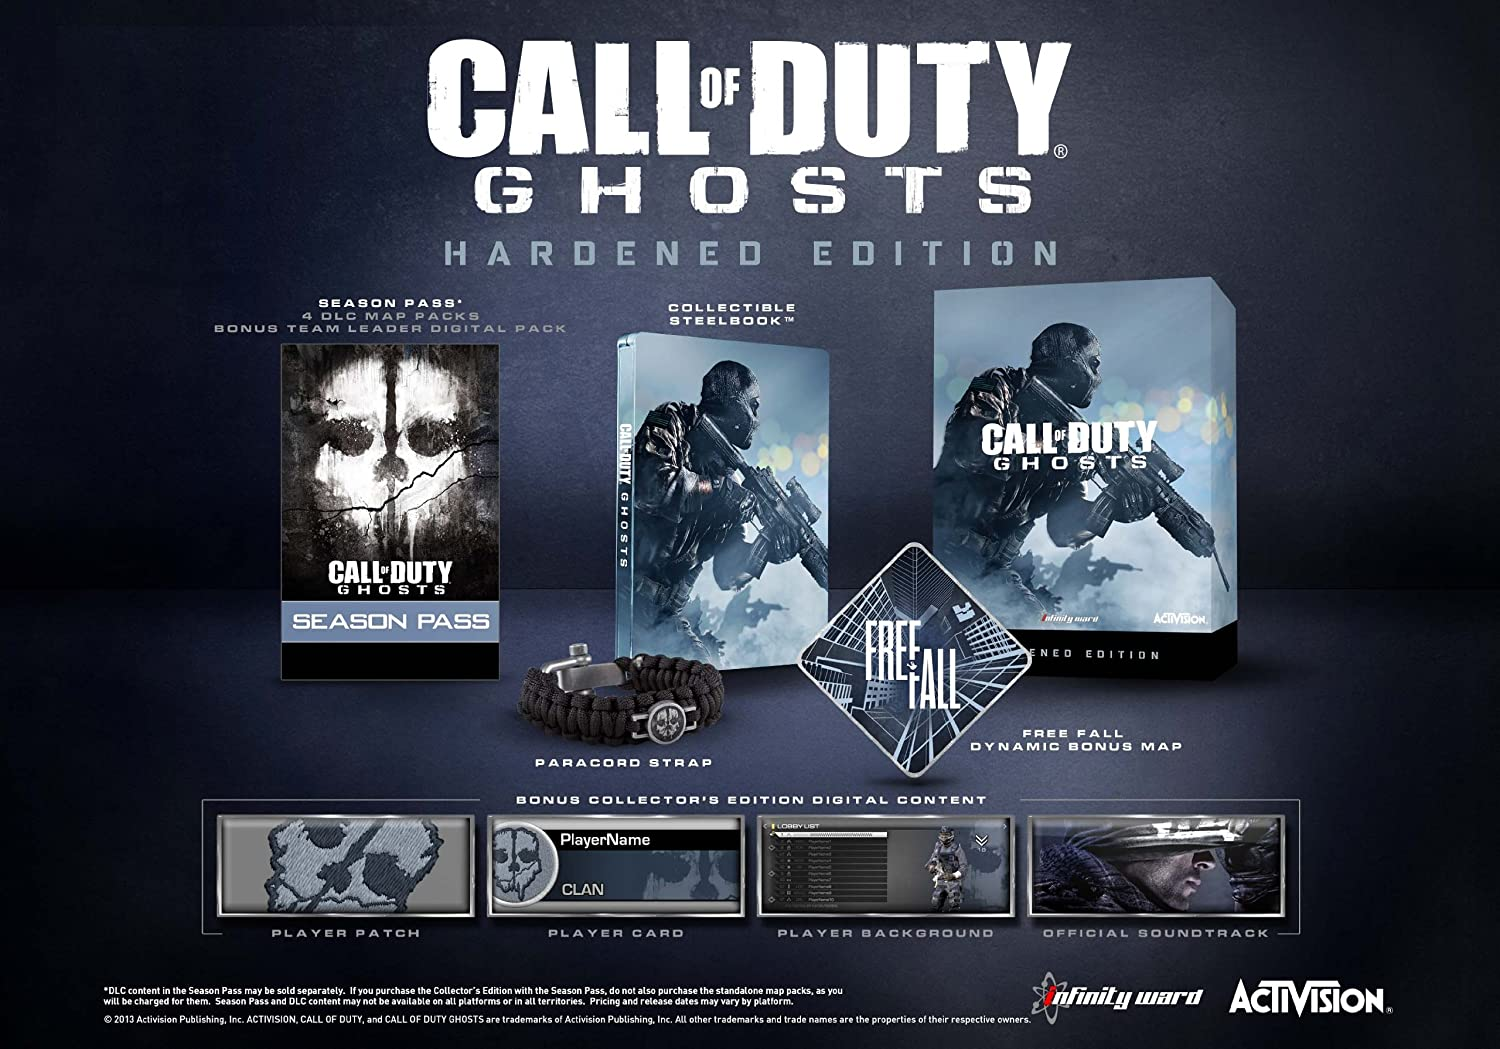 Amazon.com: Call of Duty: Ghosts Hardened Edition - Xbox 360 ... on call of duty black ops 3 release date, call of duty black ops rezurrection, call of duty ghost whiteout map, call duty ghost alien, call of duty black ops screenshots, black ops 1 dlc maps, bo2 dlc maps, call of duty 3 maps, sniper ghost warrior maps, call of duty mw3 maps, black ops 2 dlc maps, call of duty ghosts dlc fog, call of duty black ops 2 orientation, call of duty black ops moon map, call of duty extinction map, call of duty advanced warfare goliath, call of duty black ghost, call of duty world at war zombie maps, all call of duty ghost maps, call of duty mw3 dome,